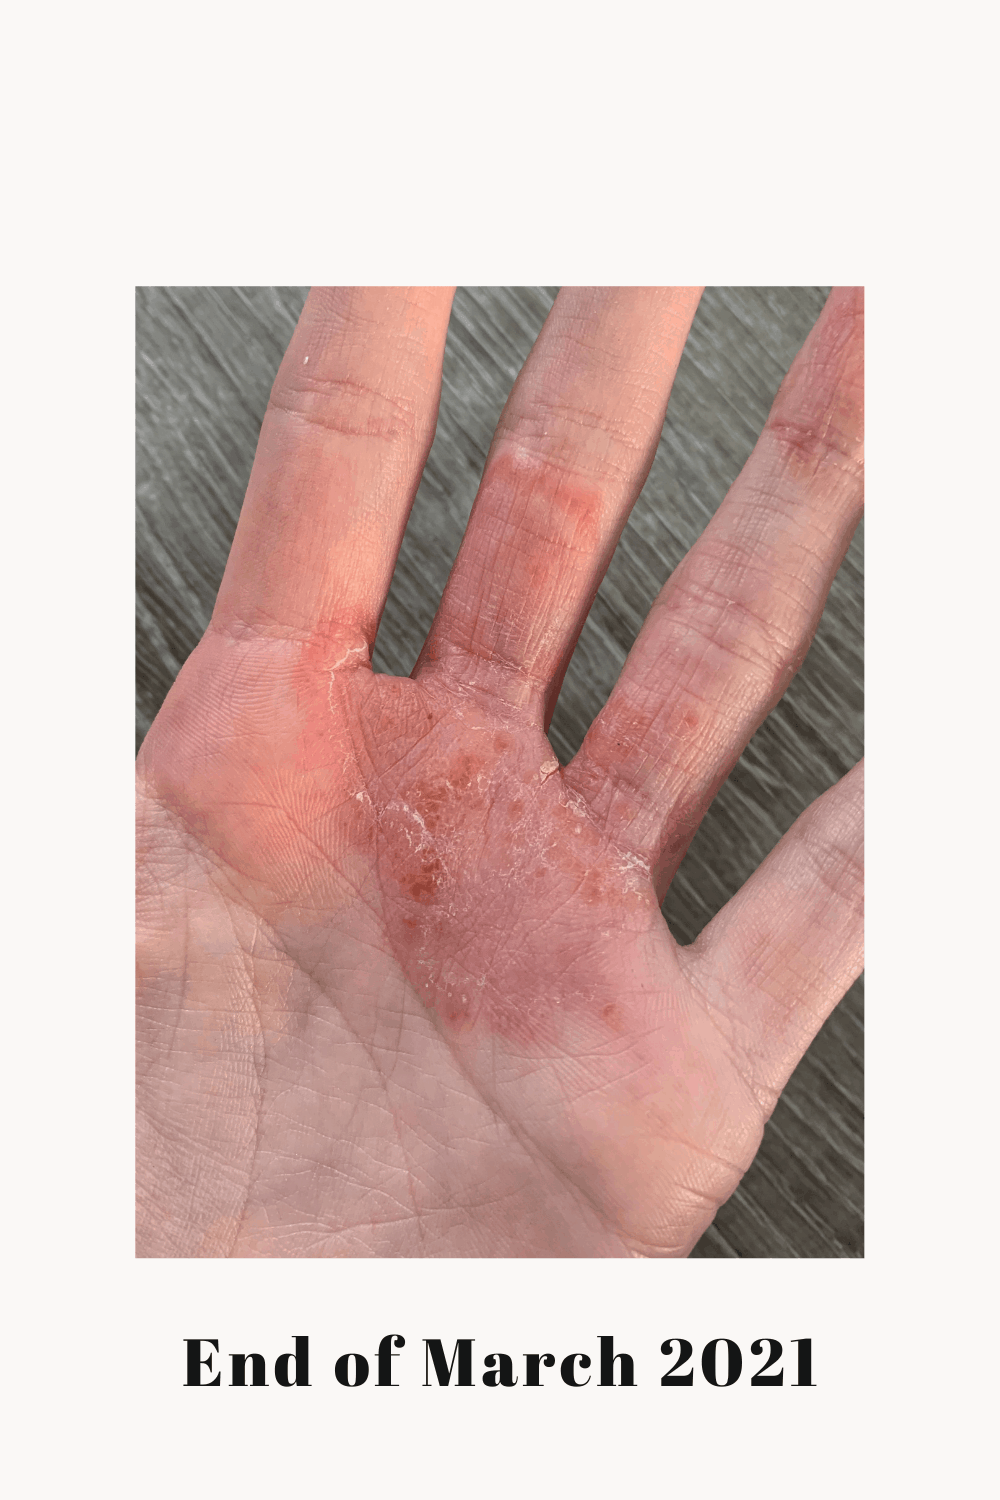 The current state of my eczema.